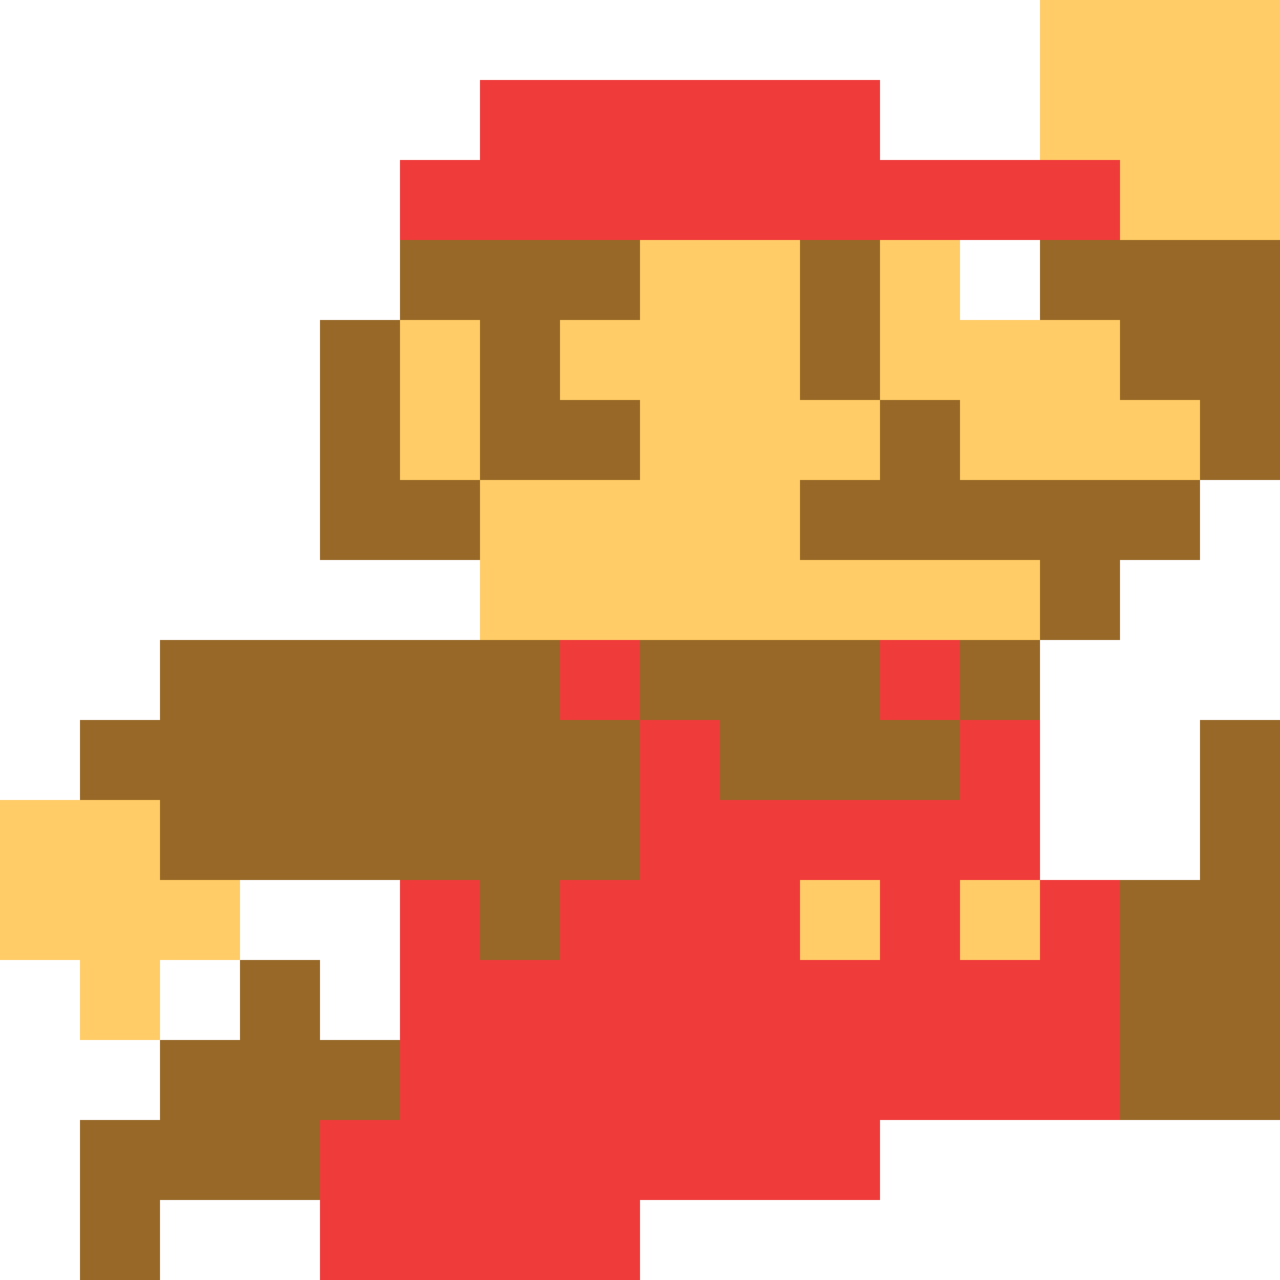 Mario Square Super Angle Bros Download HQ PNG PNG Image